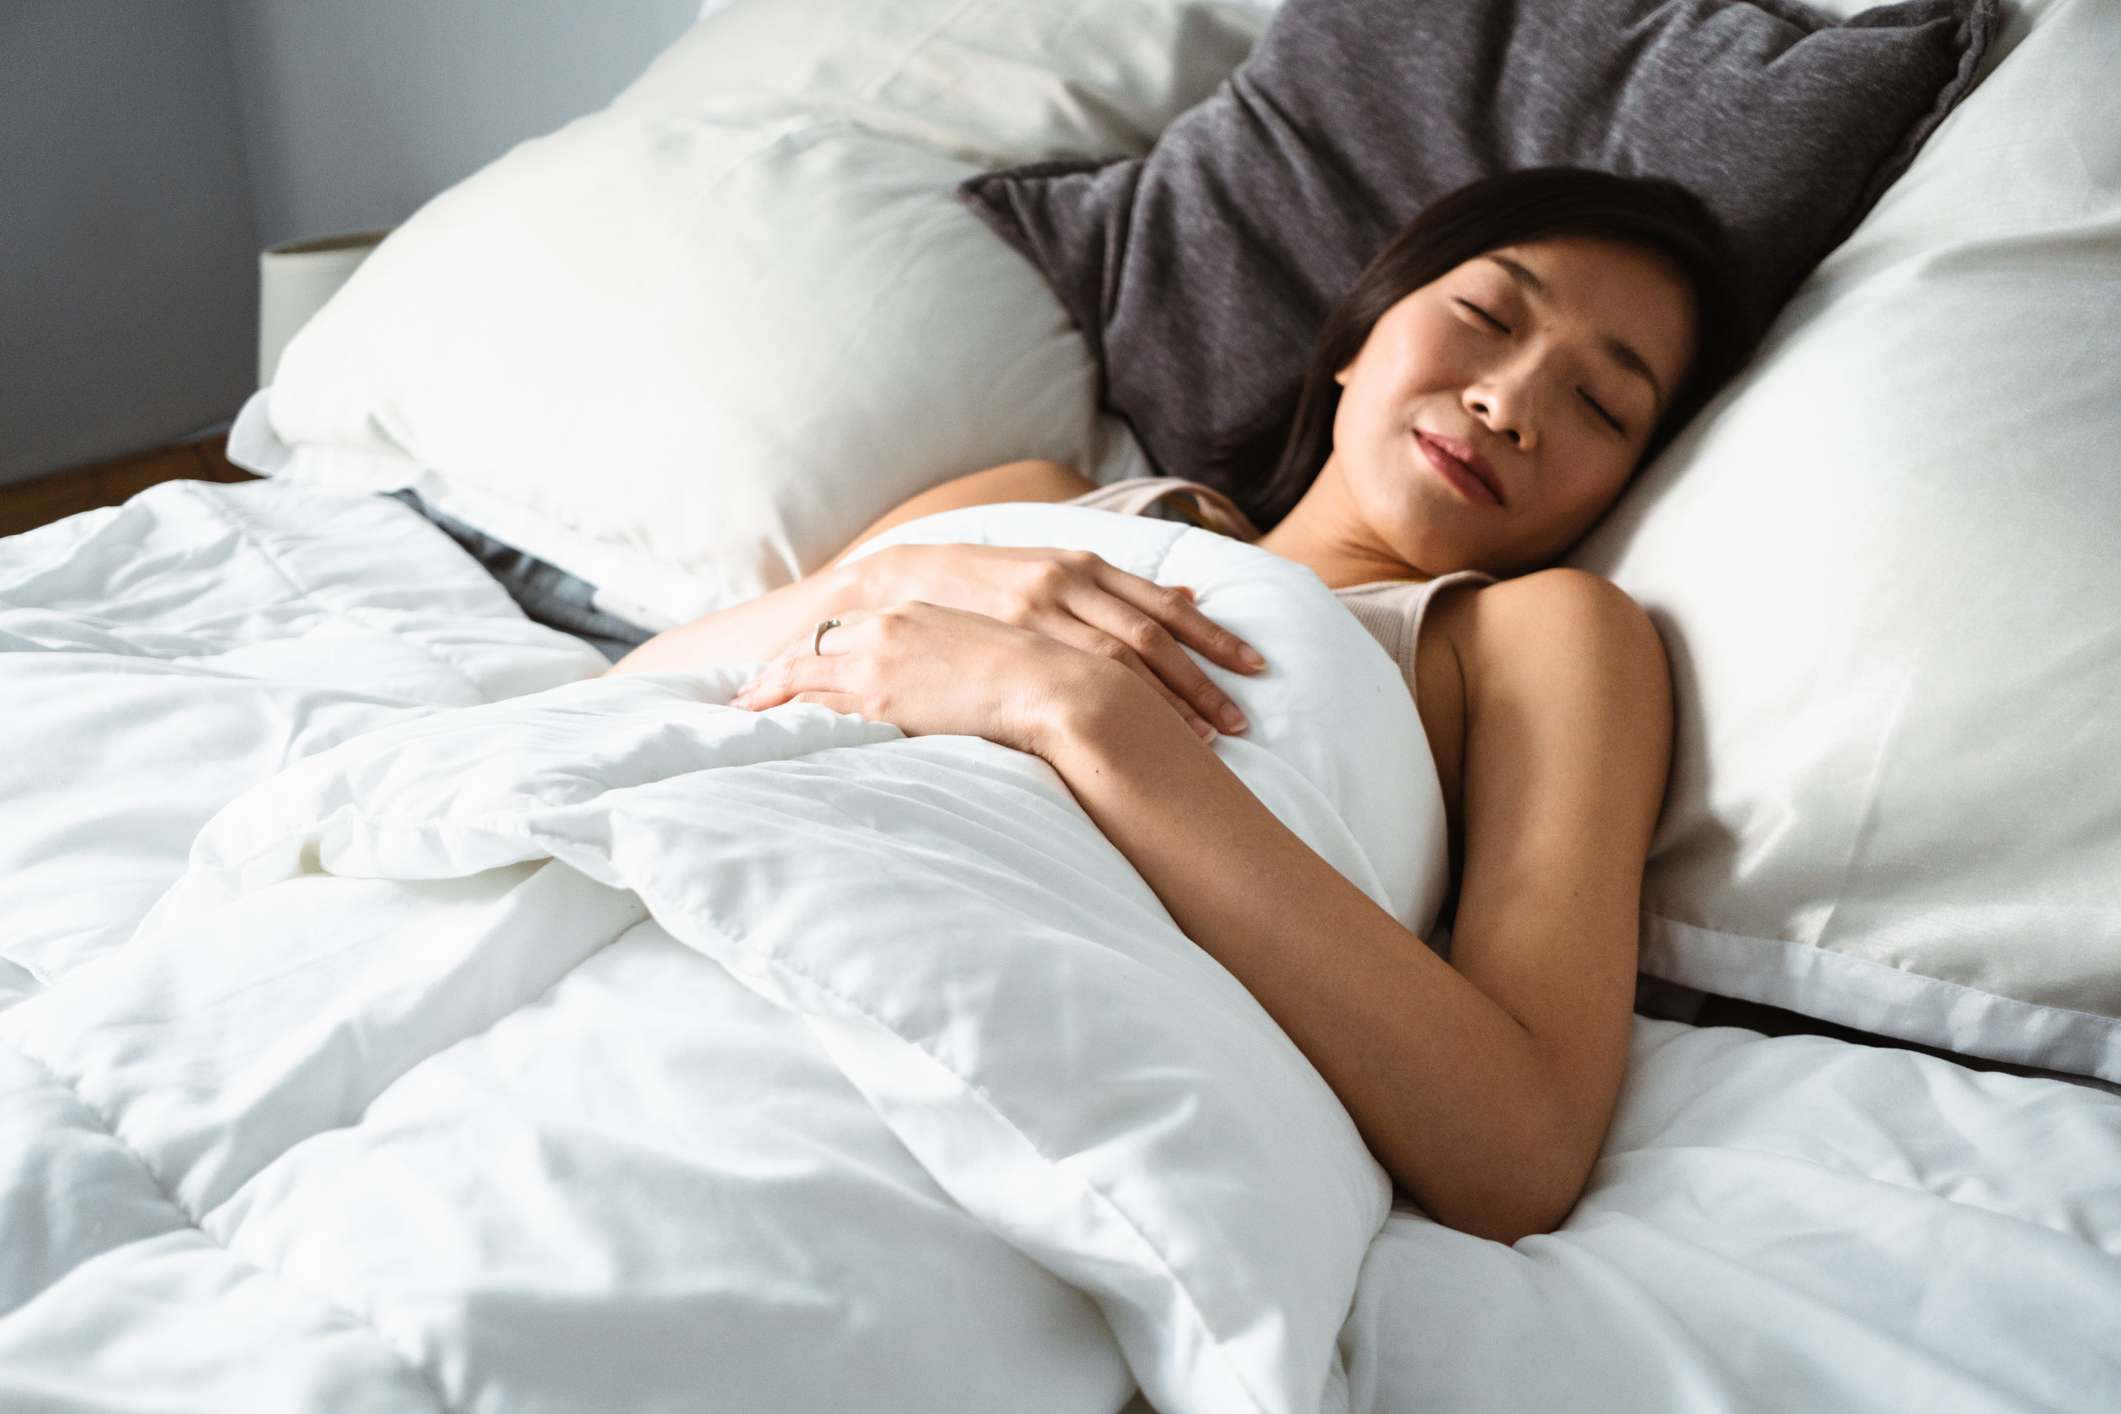 Woman lying in bed with eyes closed.